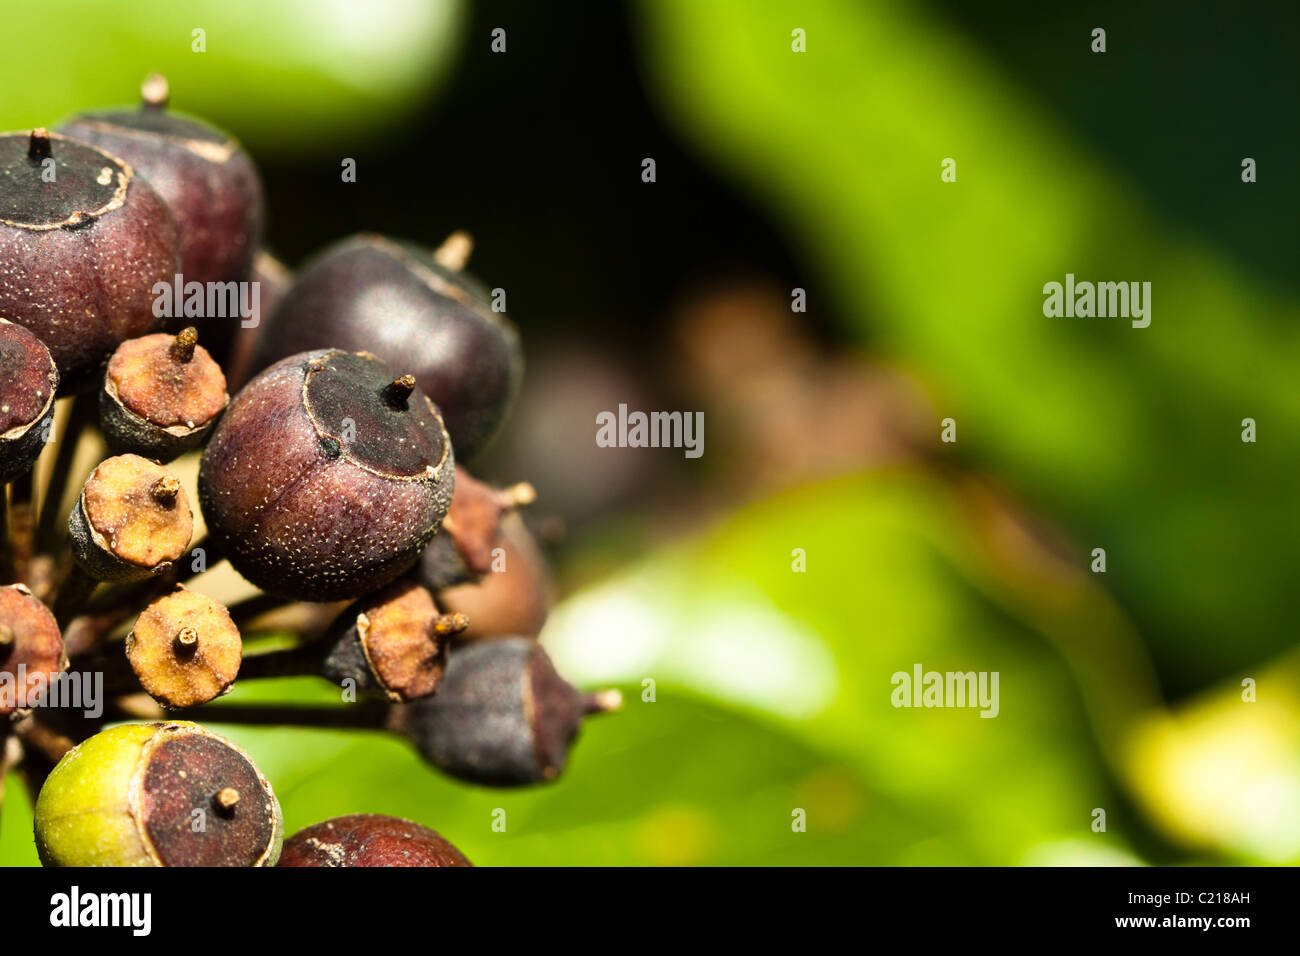 Berries on common or English Ivy (Hedera helix) Stock Photo